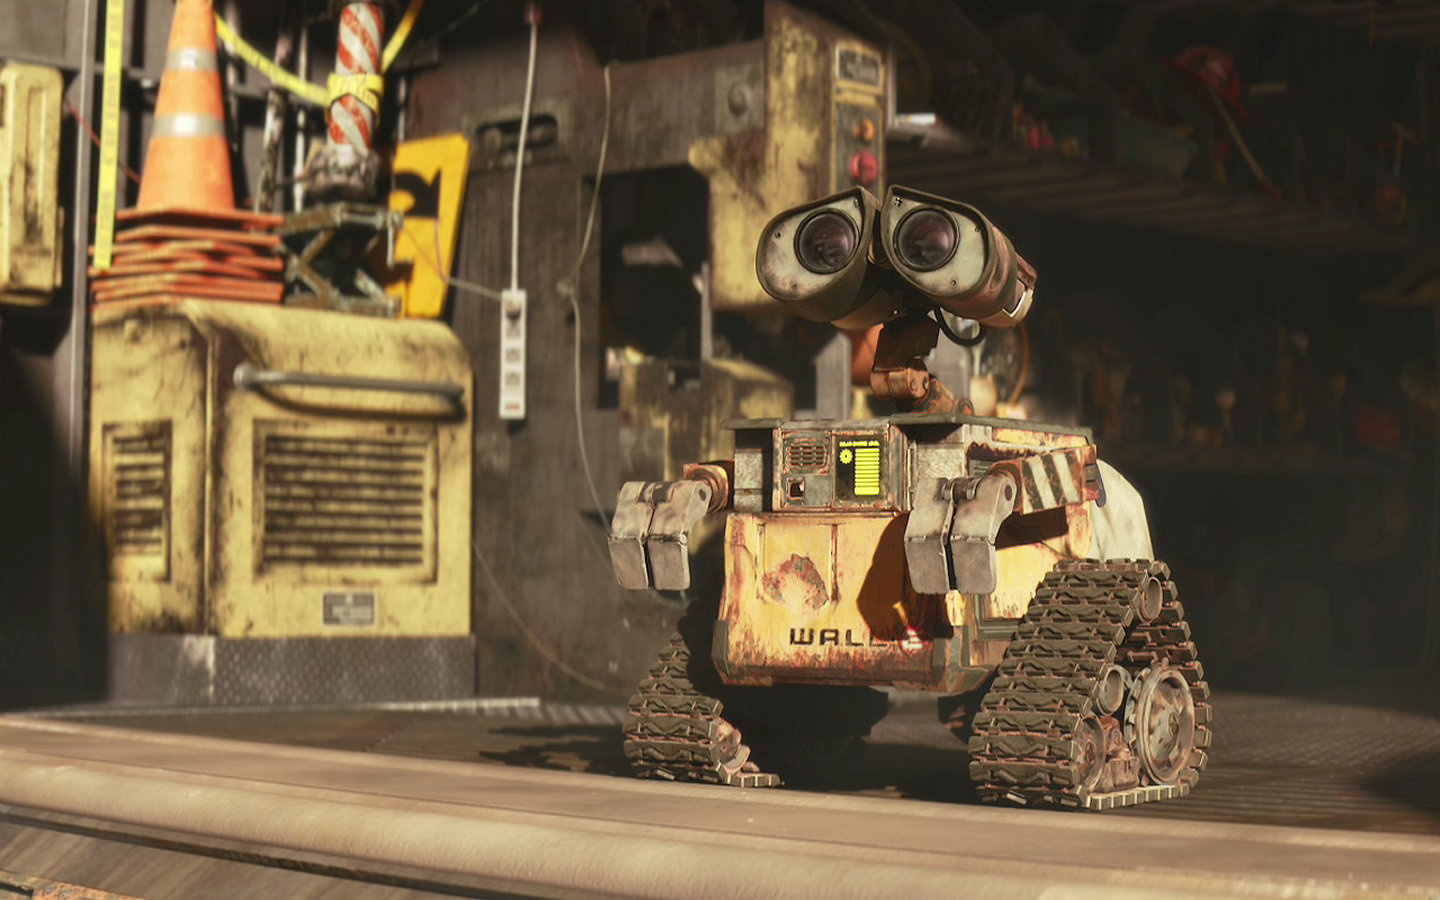 Free Wall.E high quality background ID:25889 for hd 1440x900 computer